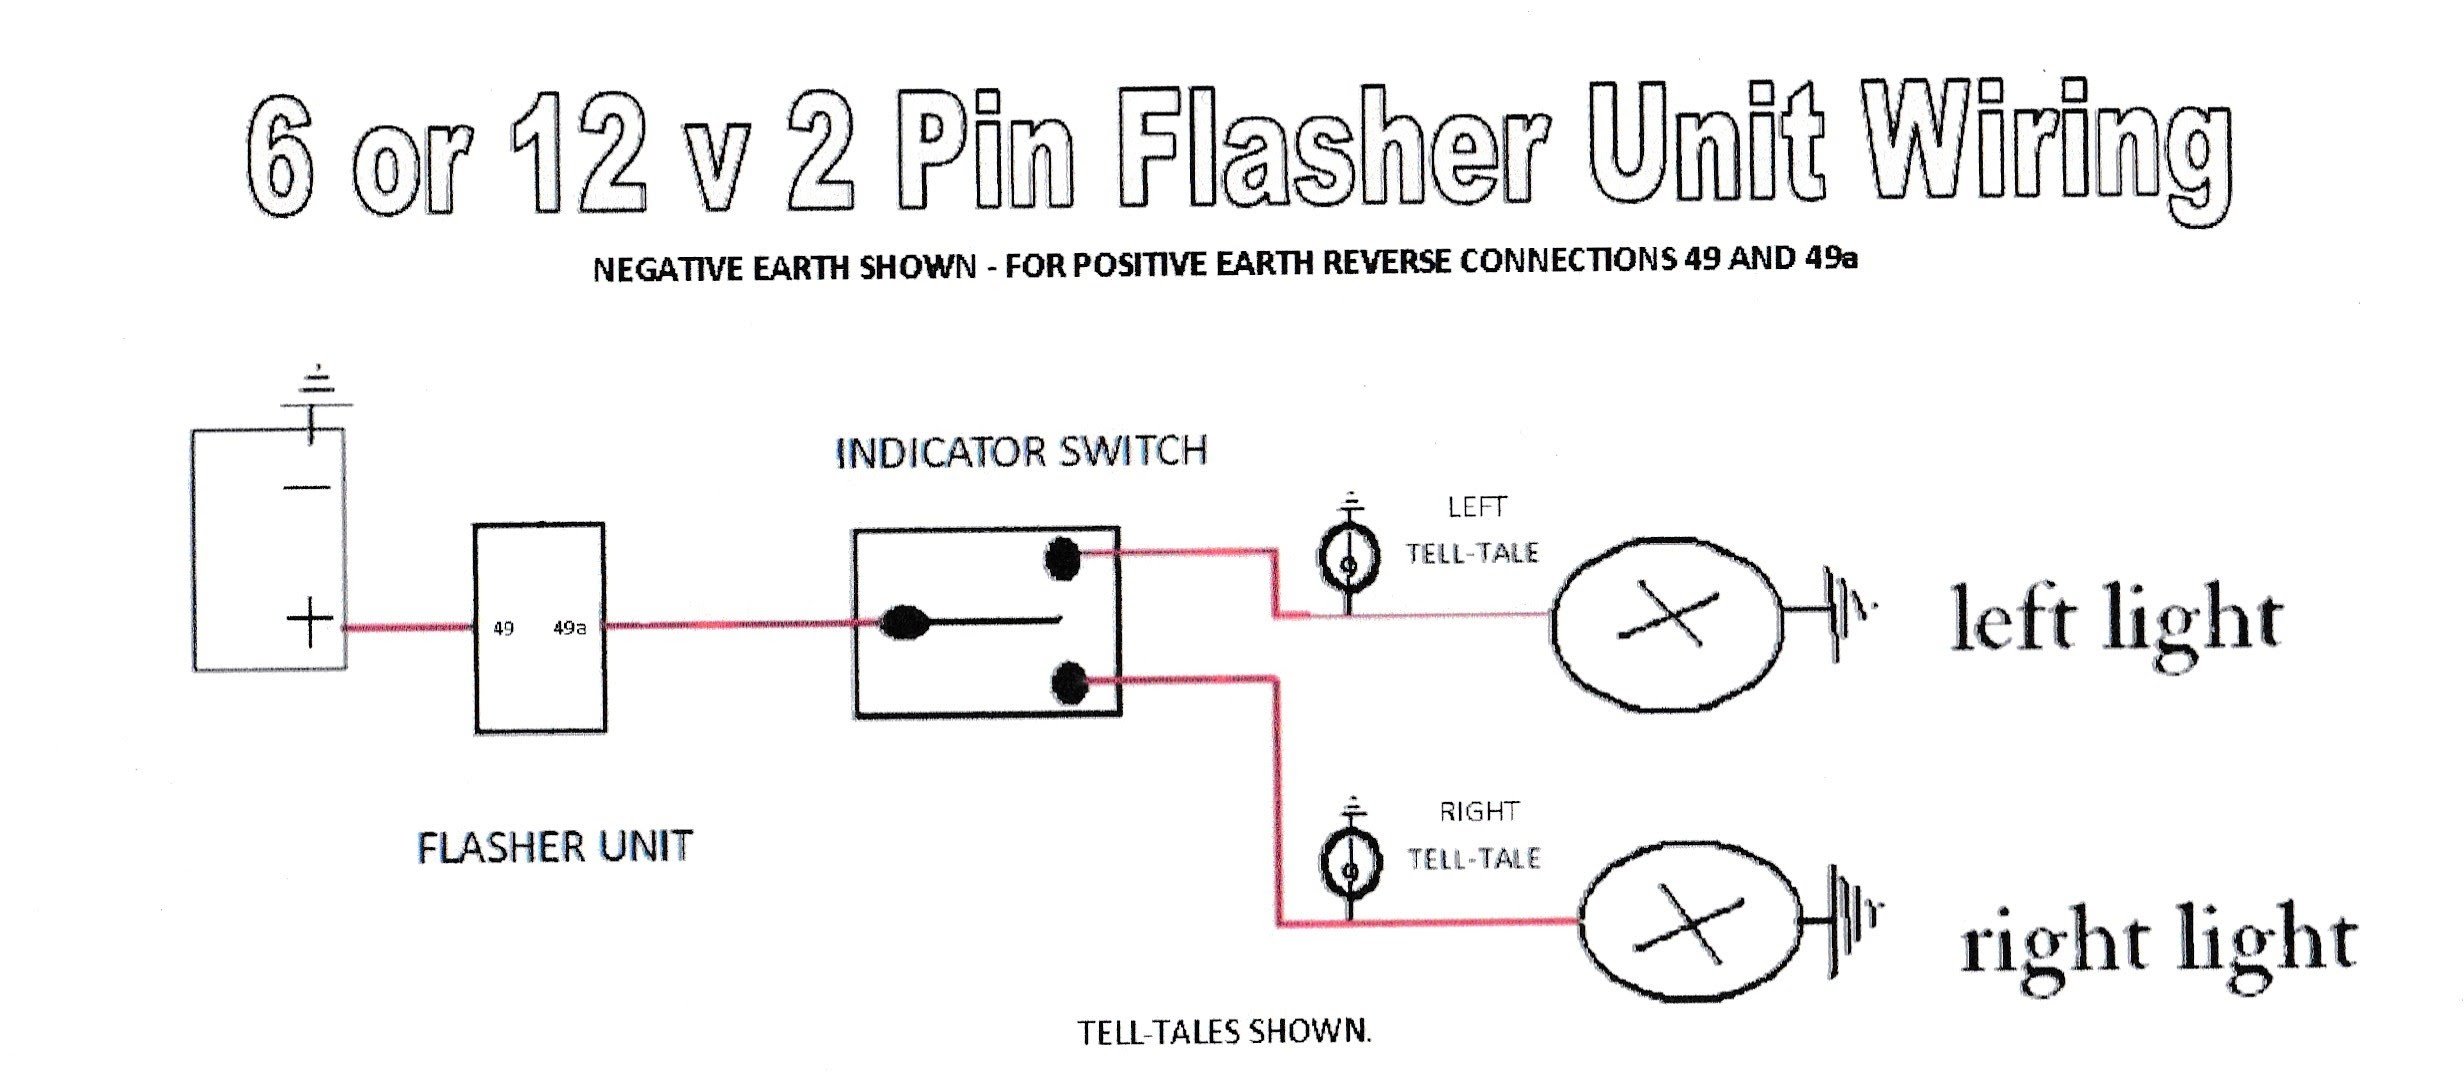 Diagram Gy6 Flasher Relay Wiring Diagram Full Version Hd Quality Wiring Diagram Diagramscourt Pretoriani It